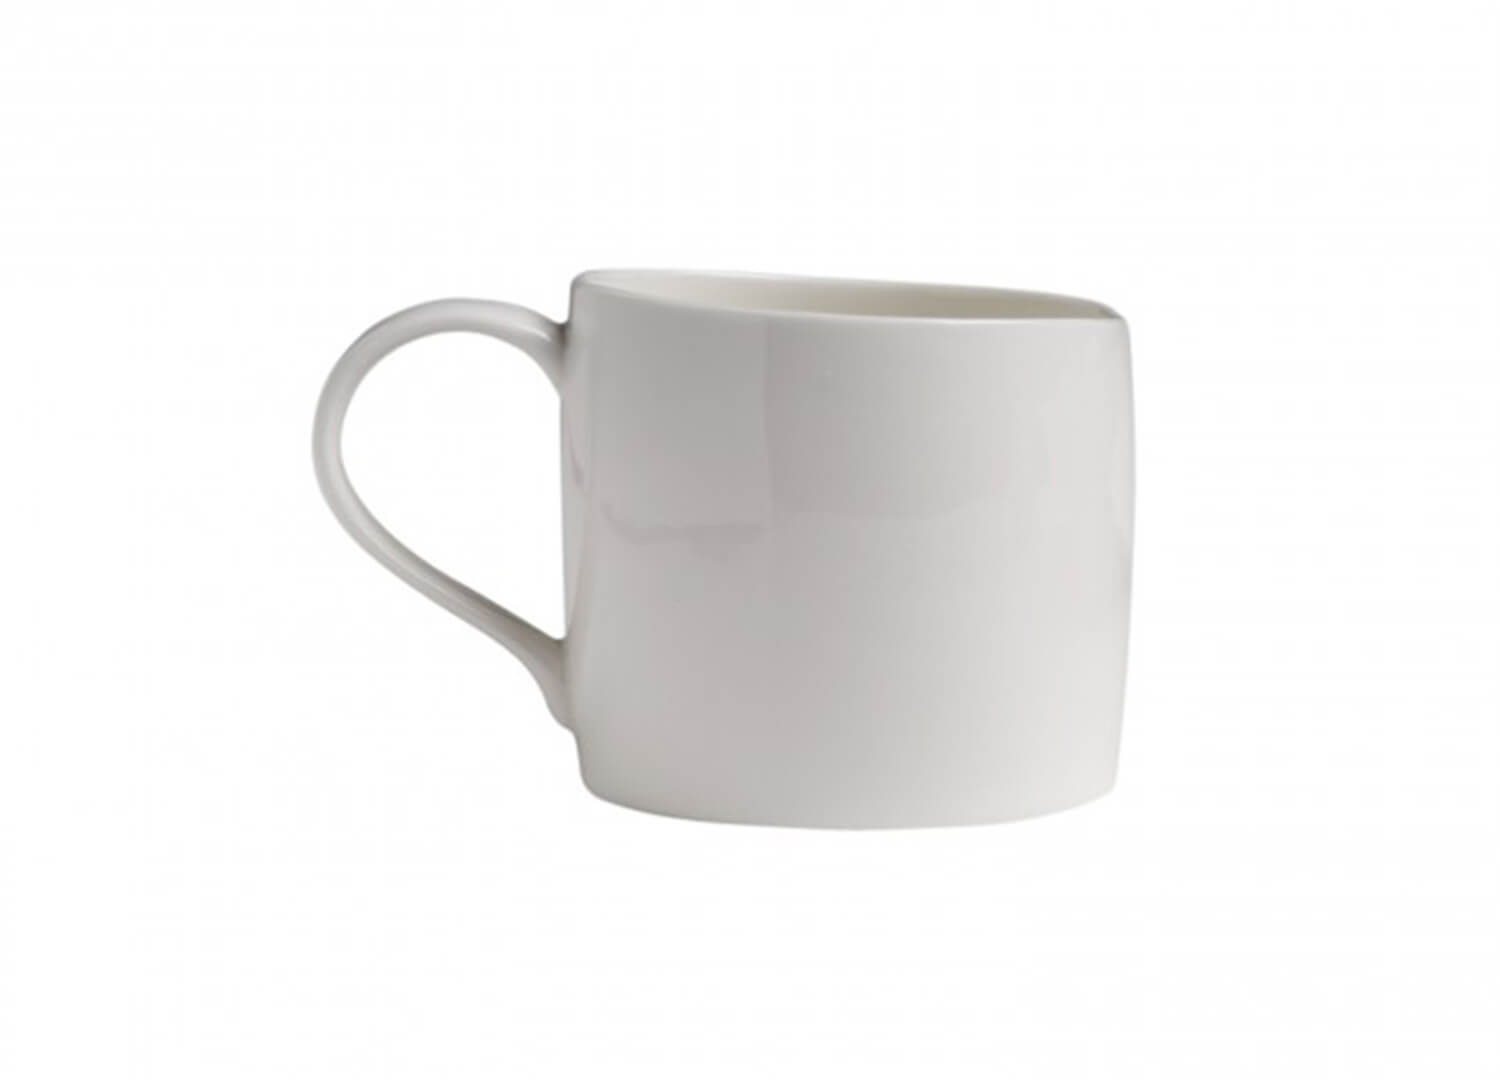 Organic-Mug-Mothers-Day-Gift-Guide-Est-Living